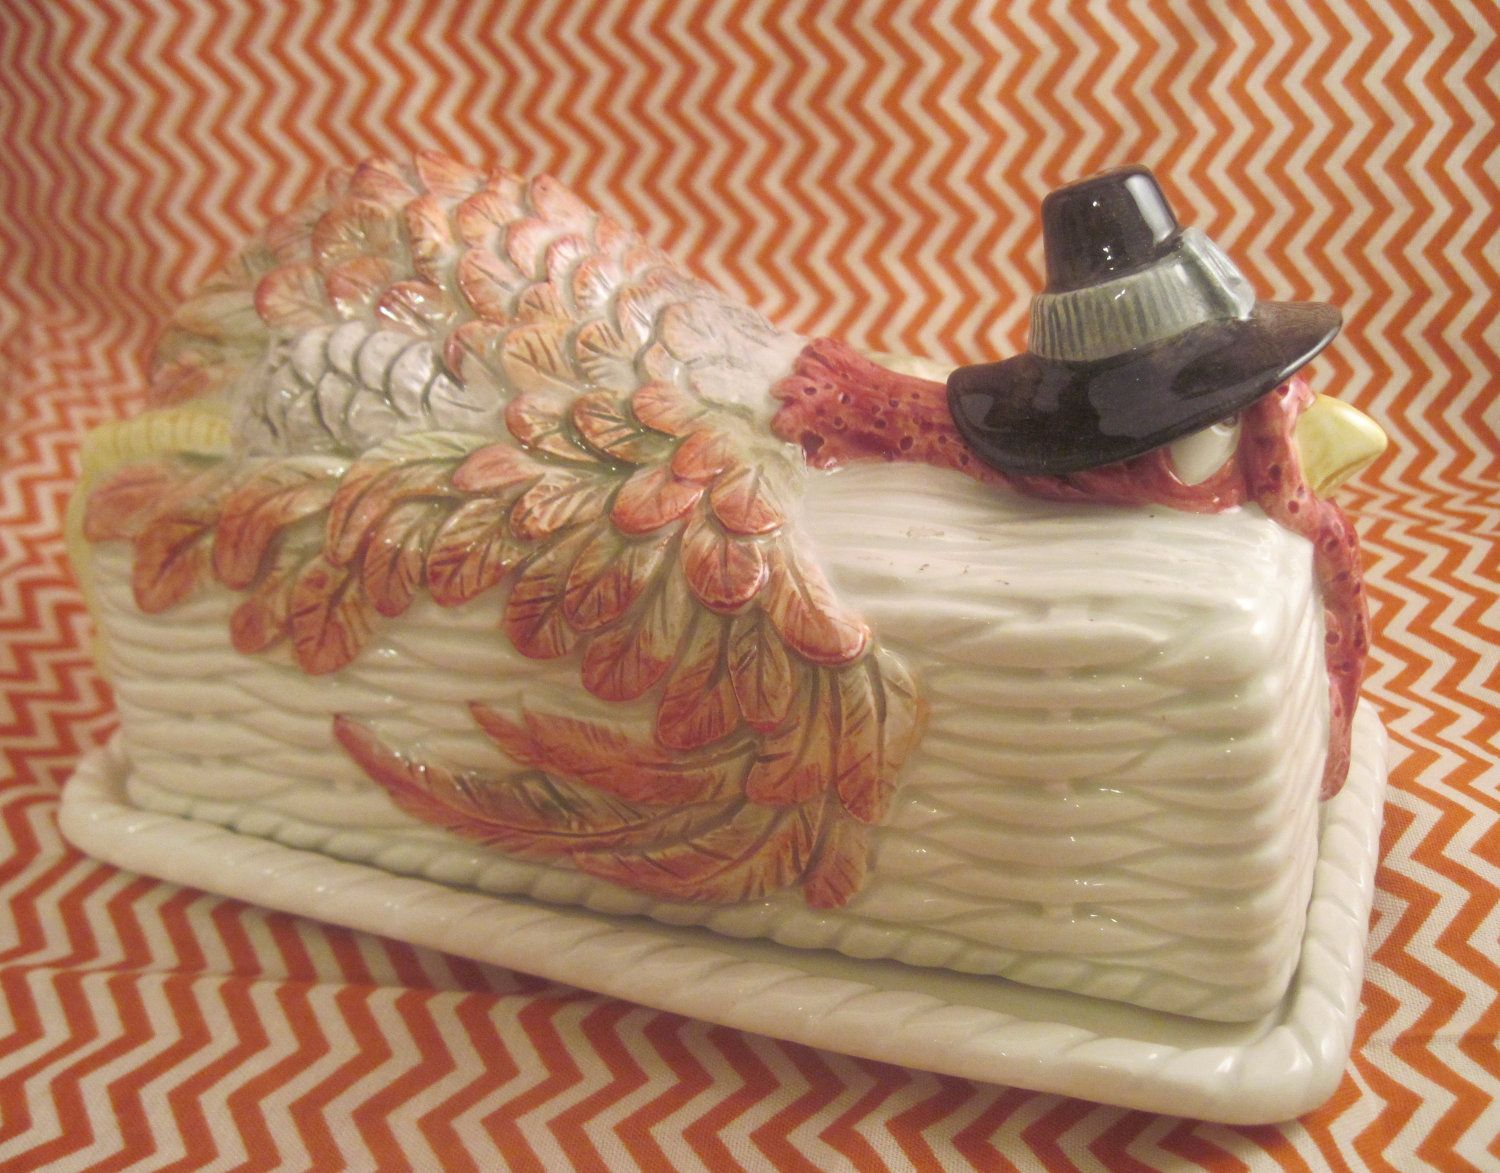 fitz and floyd turkey butter dish fitz and floyd pilgrims